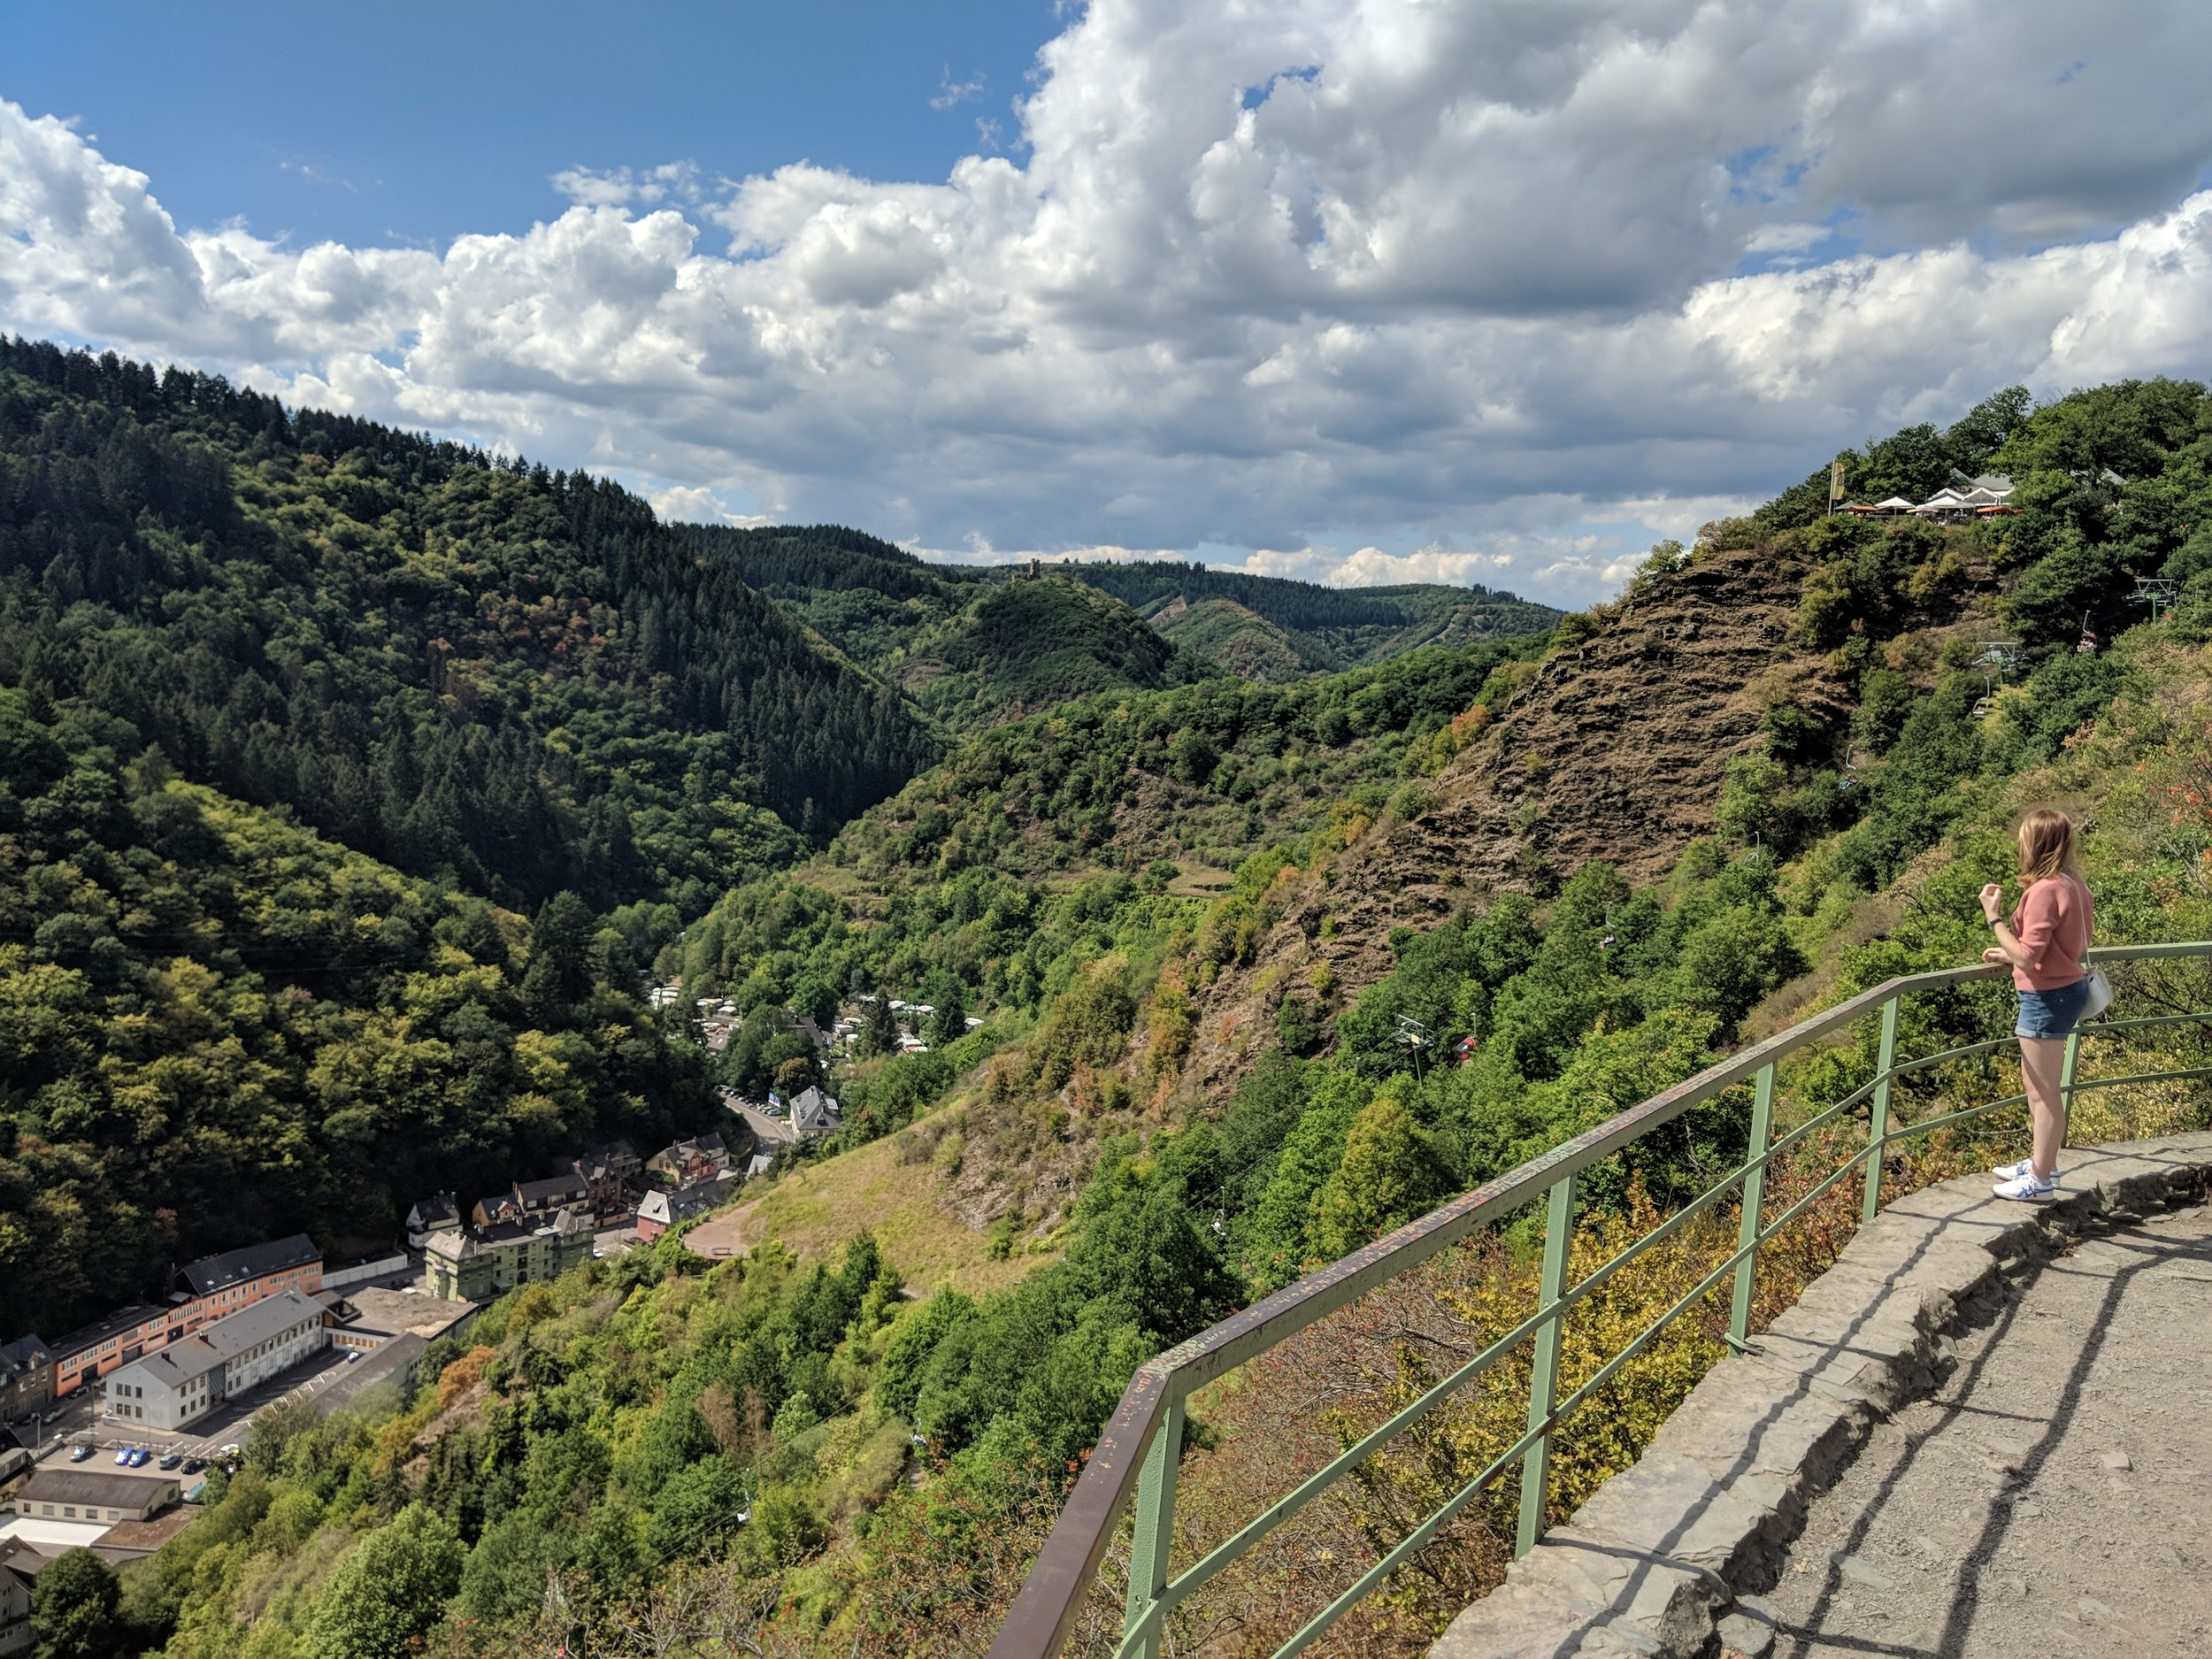 The view from the top of the Cochemer Sesselbahn